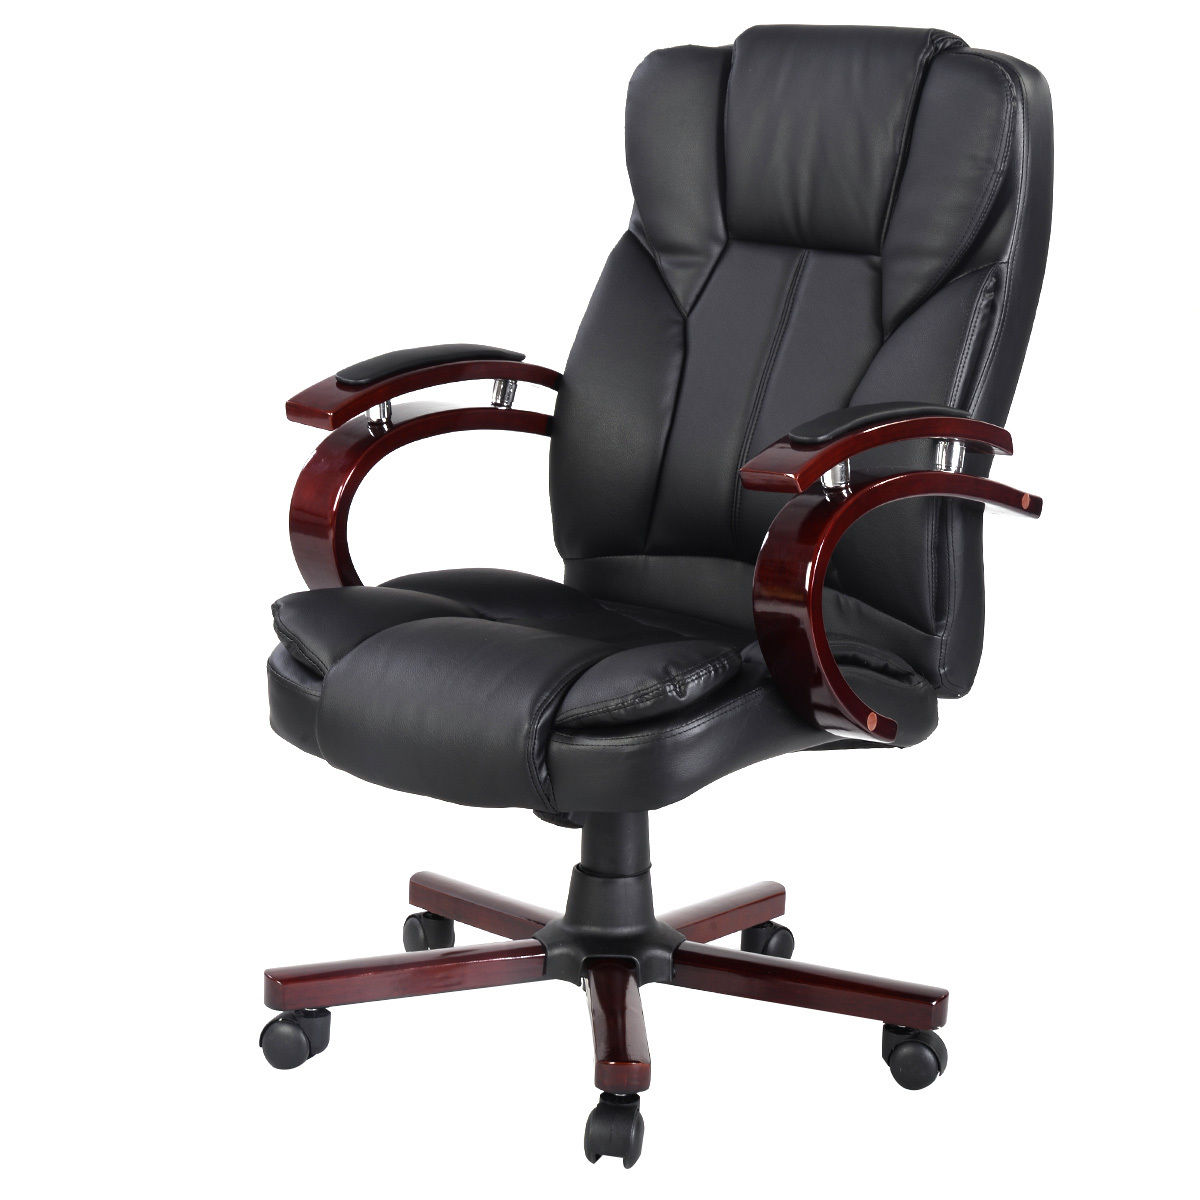 Costway Ergonomic Desk Task Office Chair High Back Executive Computer New Style